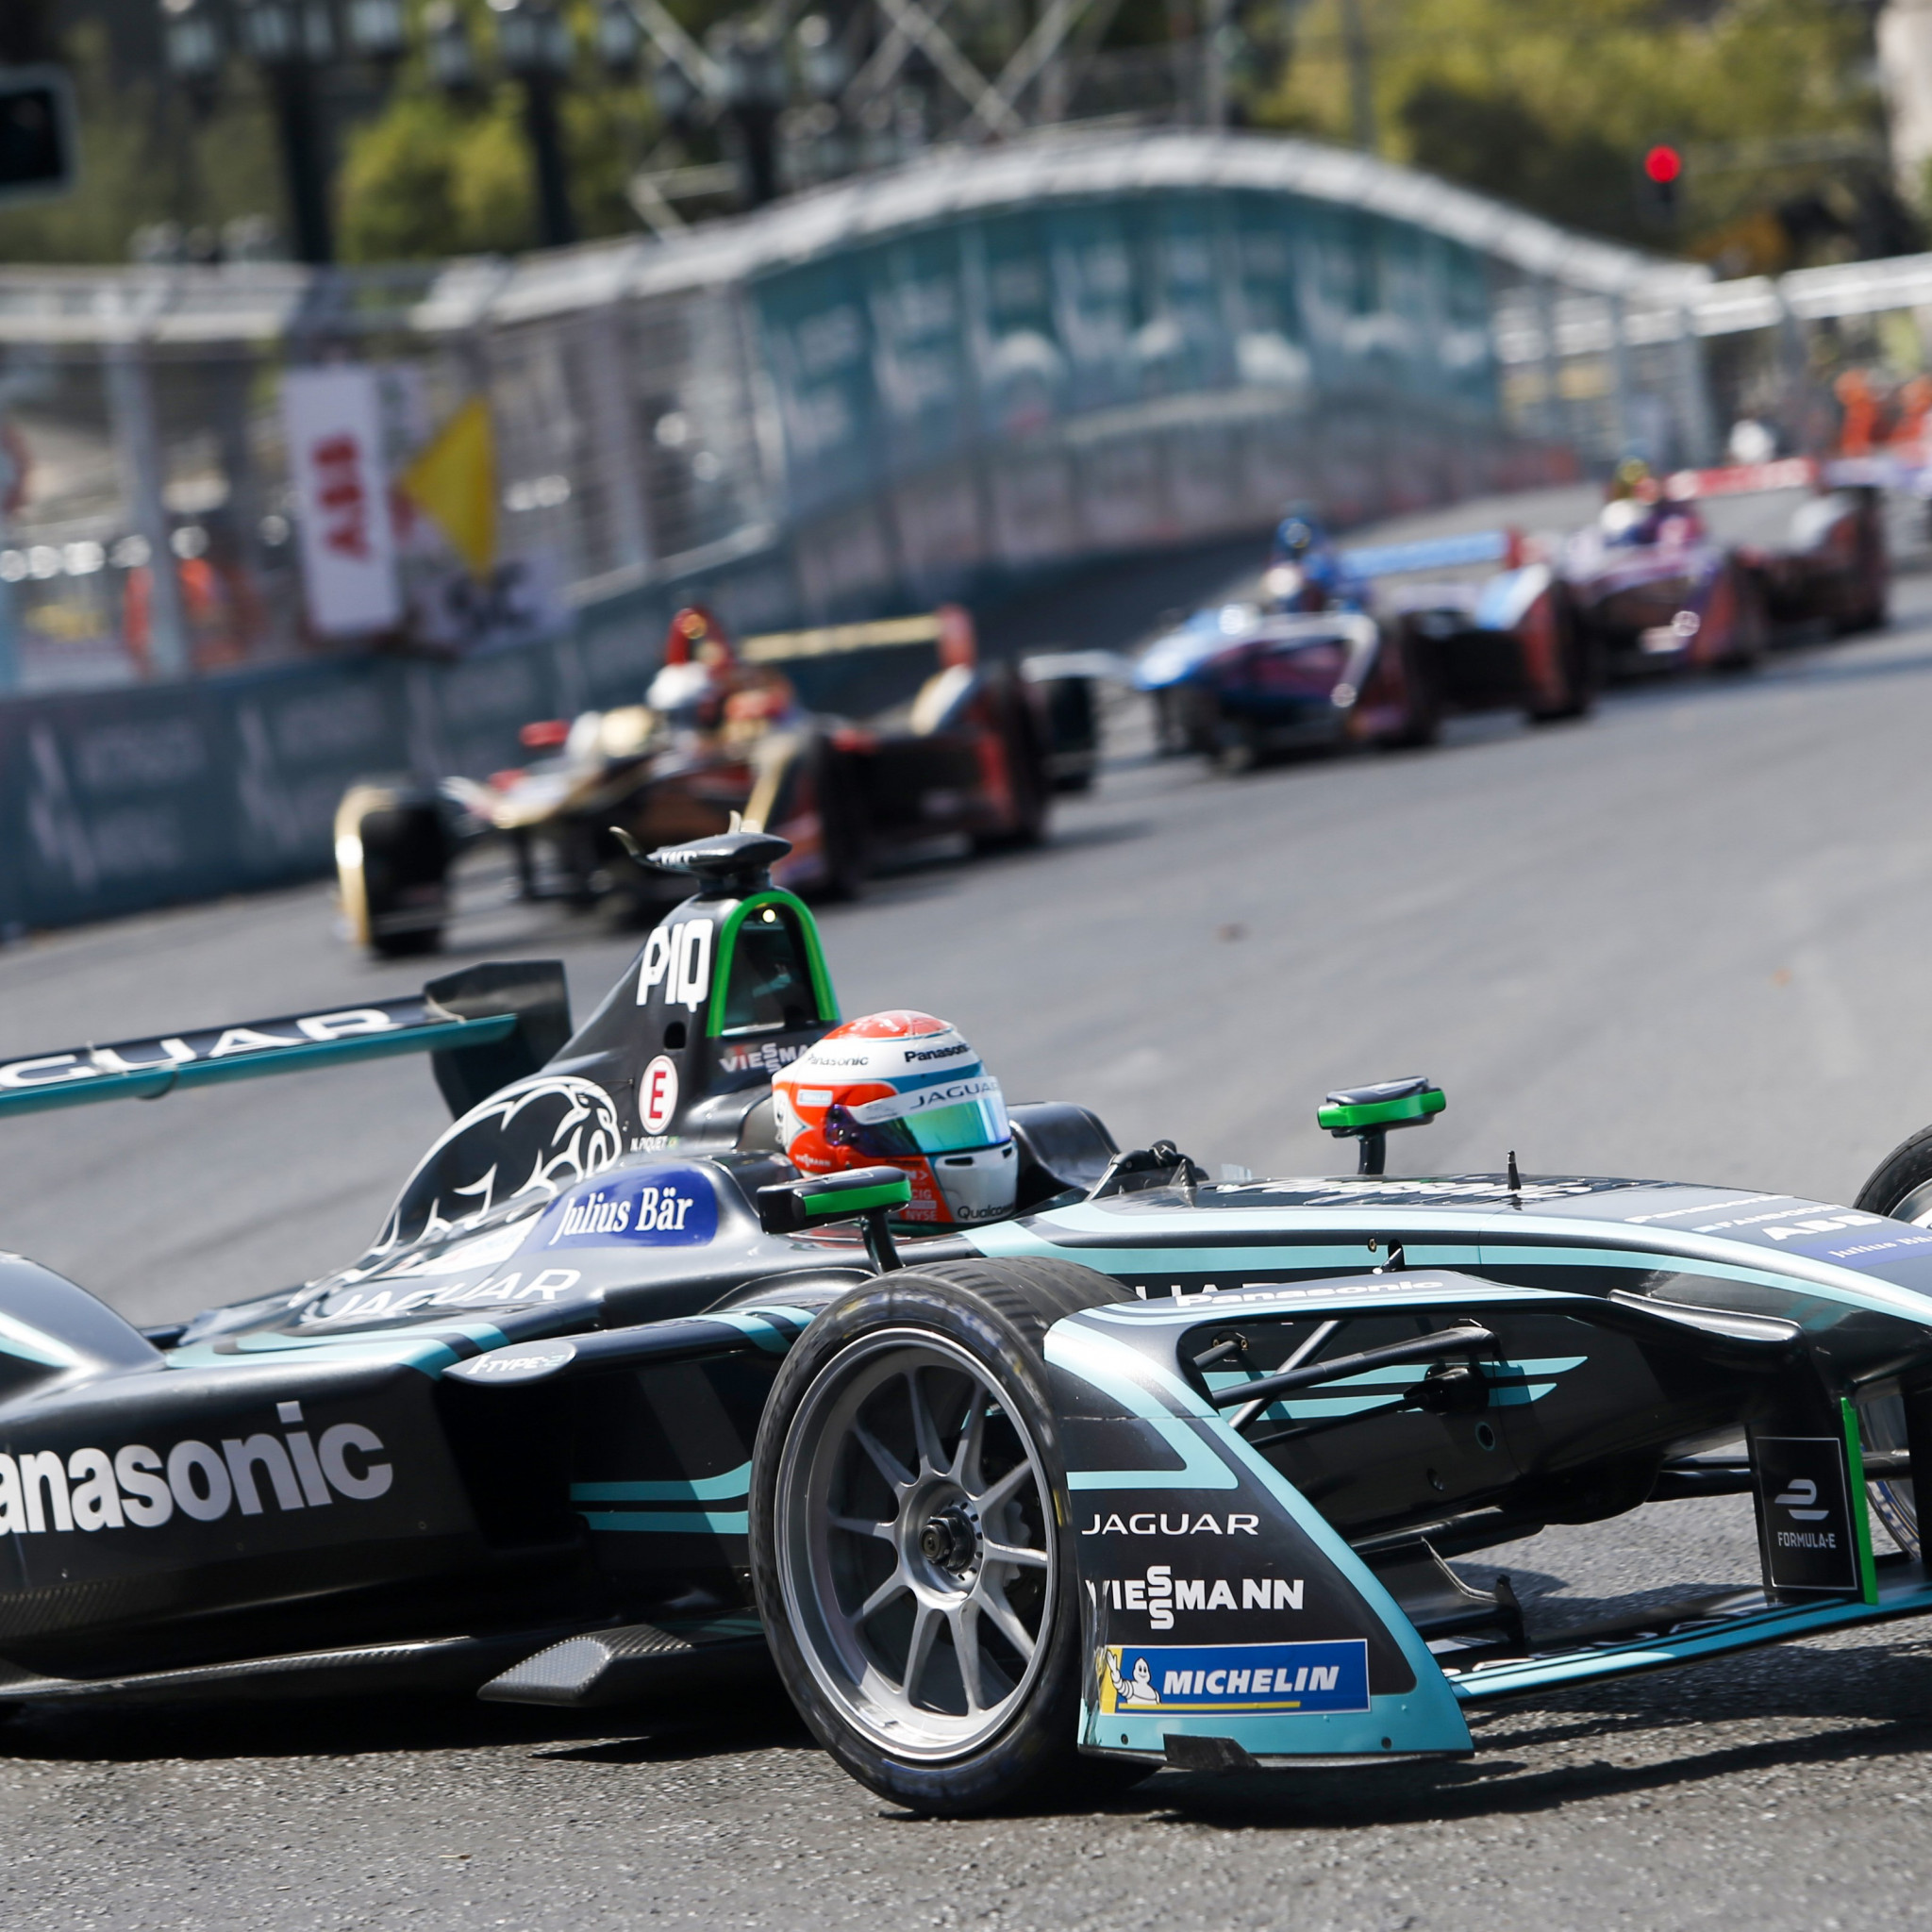 Panasonic Jaguar Racing | 2048x2048 wallpaper